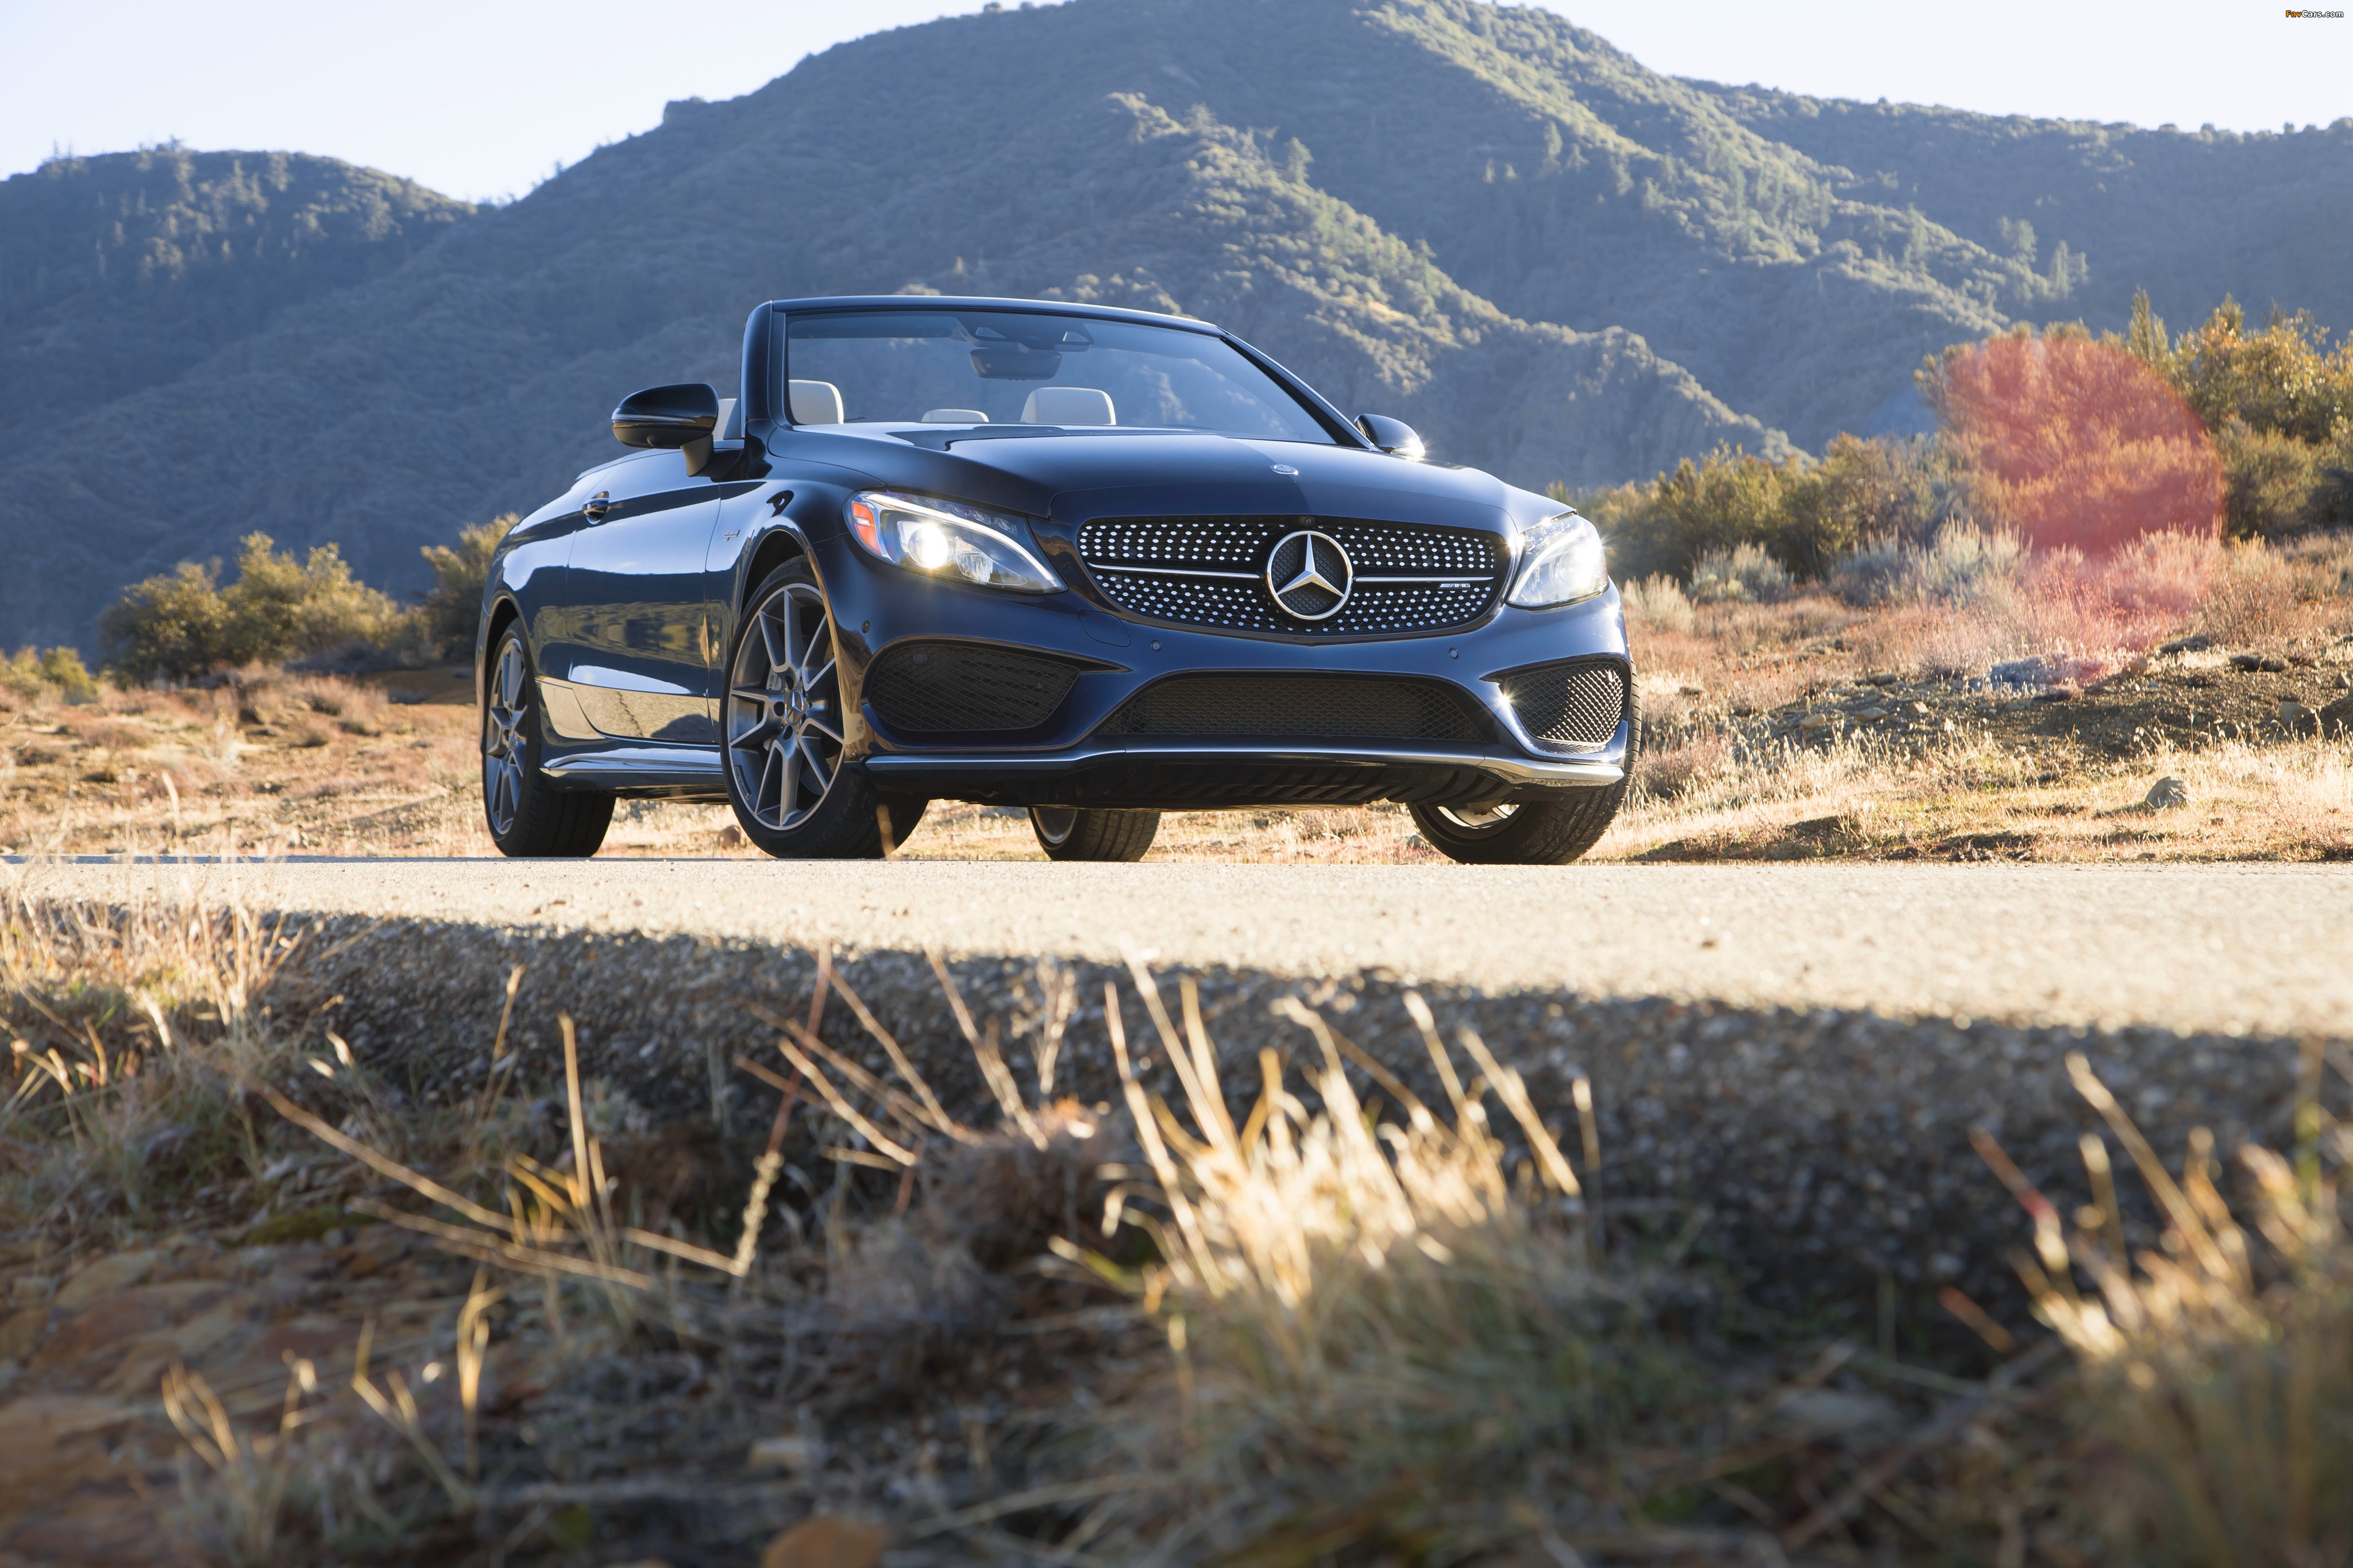 Mercedes-AMG C 43 4MATIC Cabriolet North America (A205) 2016 images (4096 x 2730)